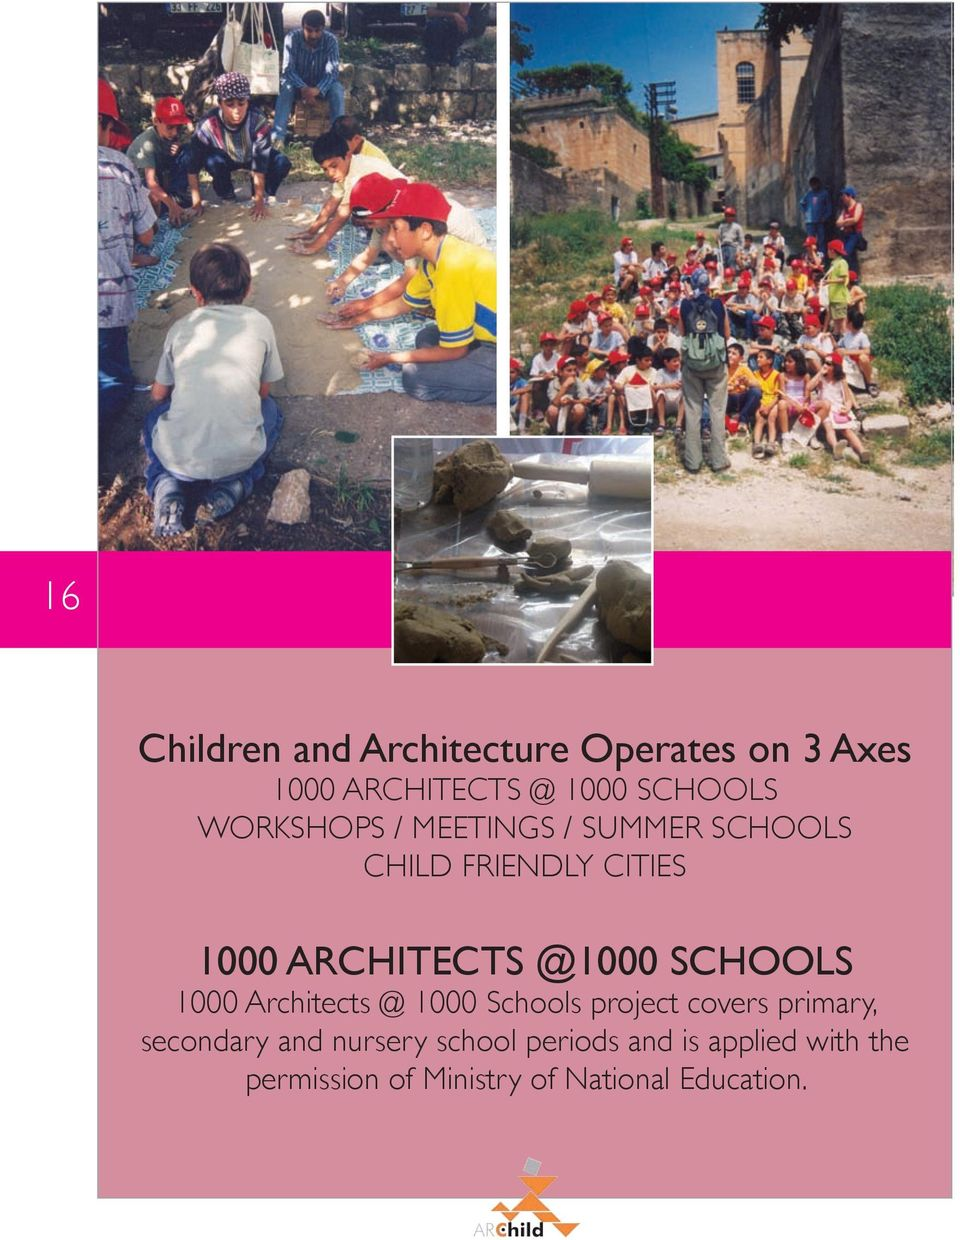 SCHOOLS 1000 Architects @ 1000 Schools project covers primary, secondary and